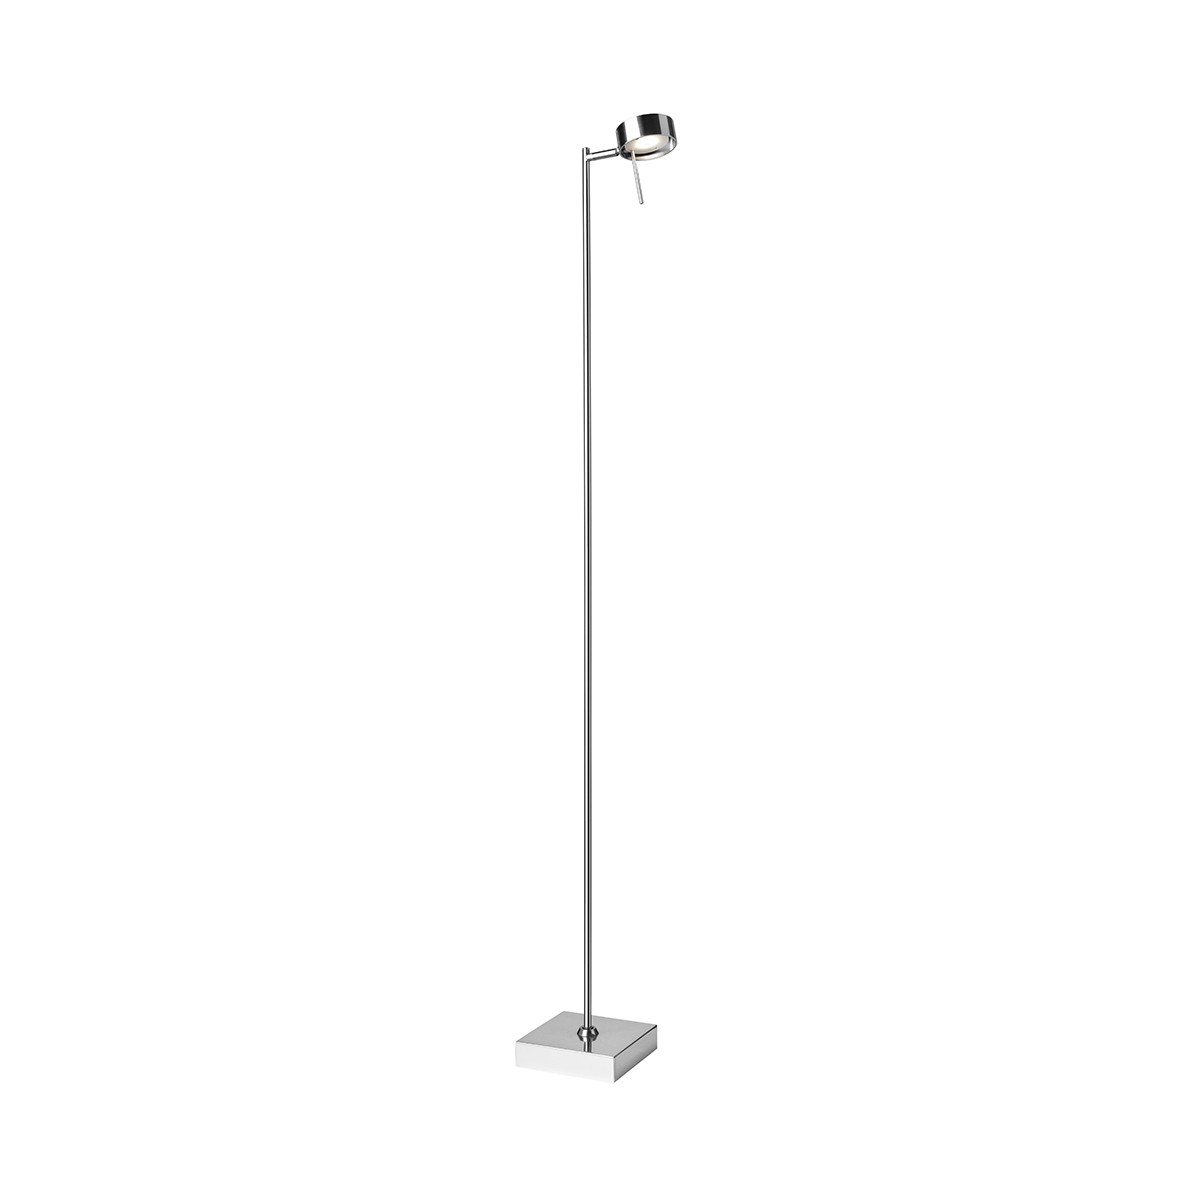 Sompex Bling LED Stehleuchte, 1-flg., Chrom matt